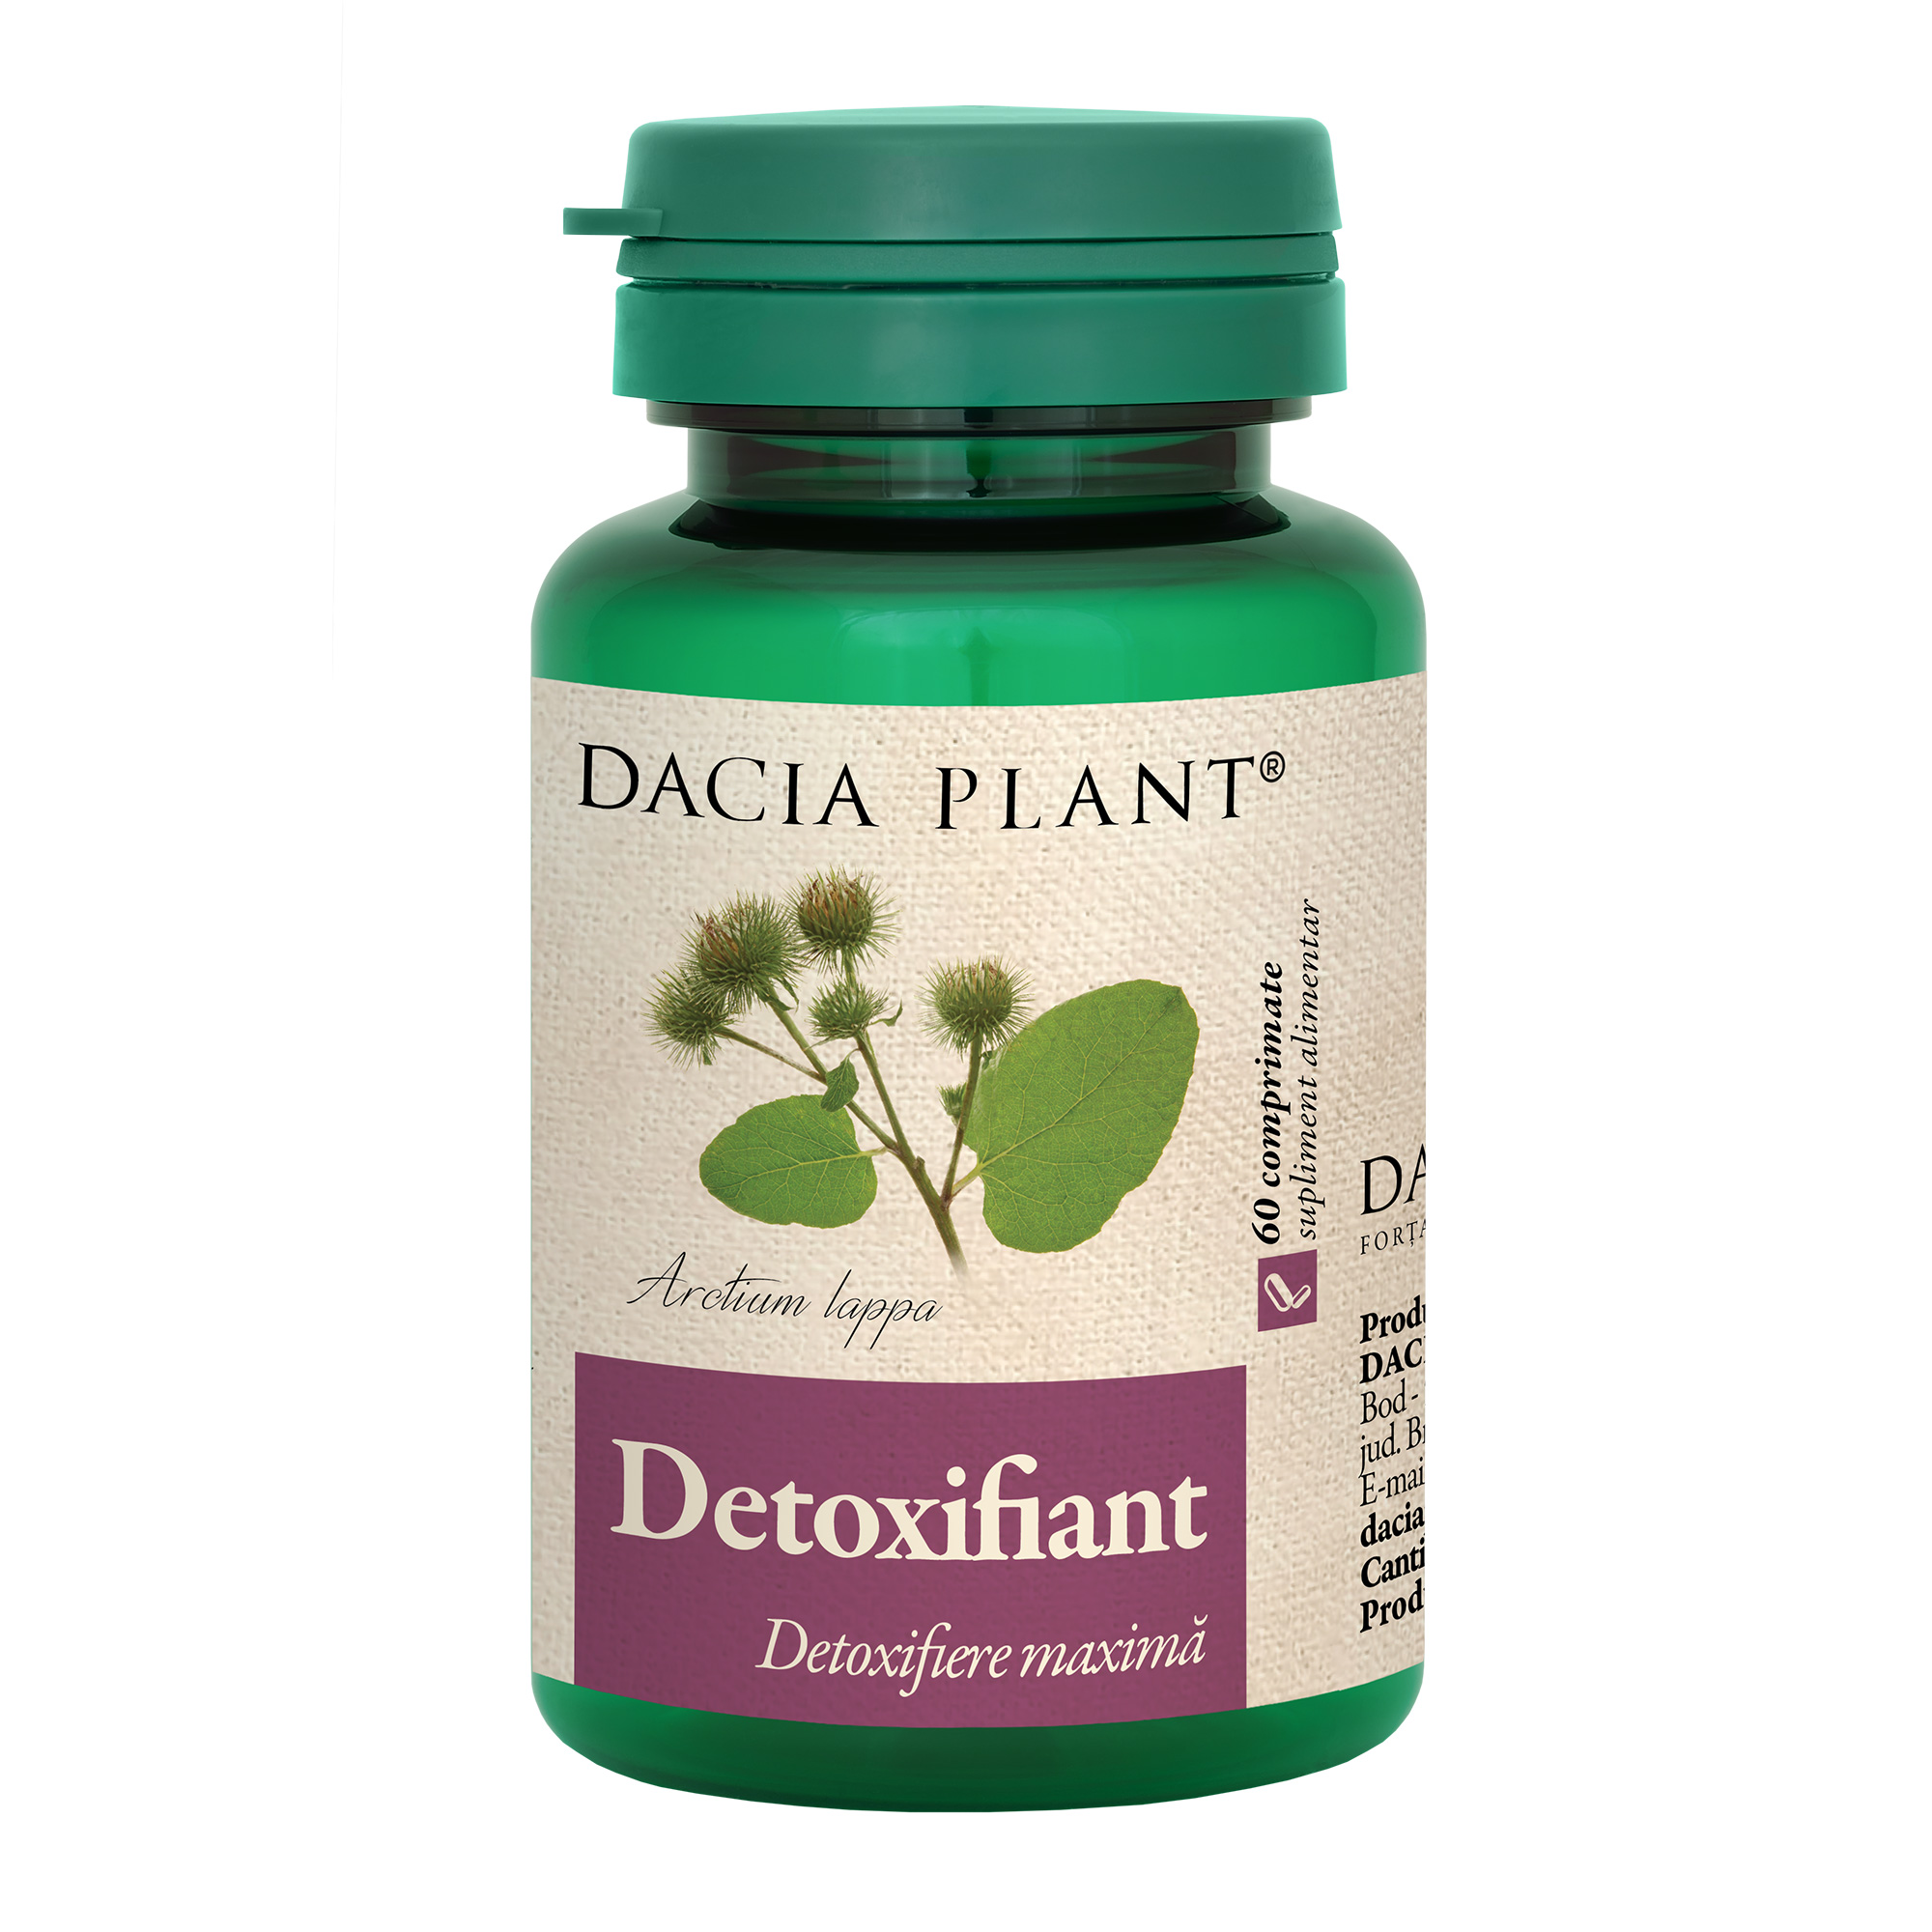 detoxifiant intestinal rectal cancer tailbone pain